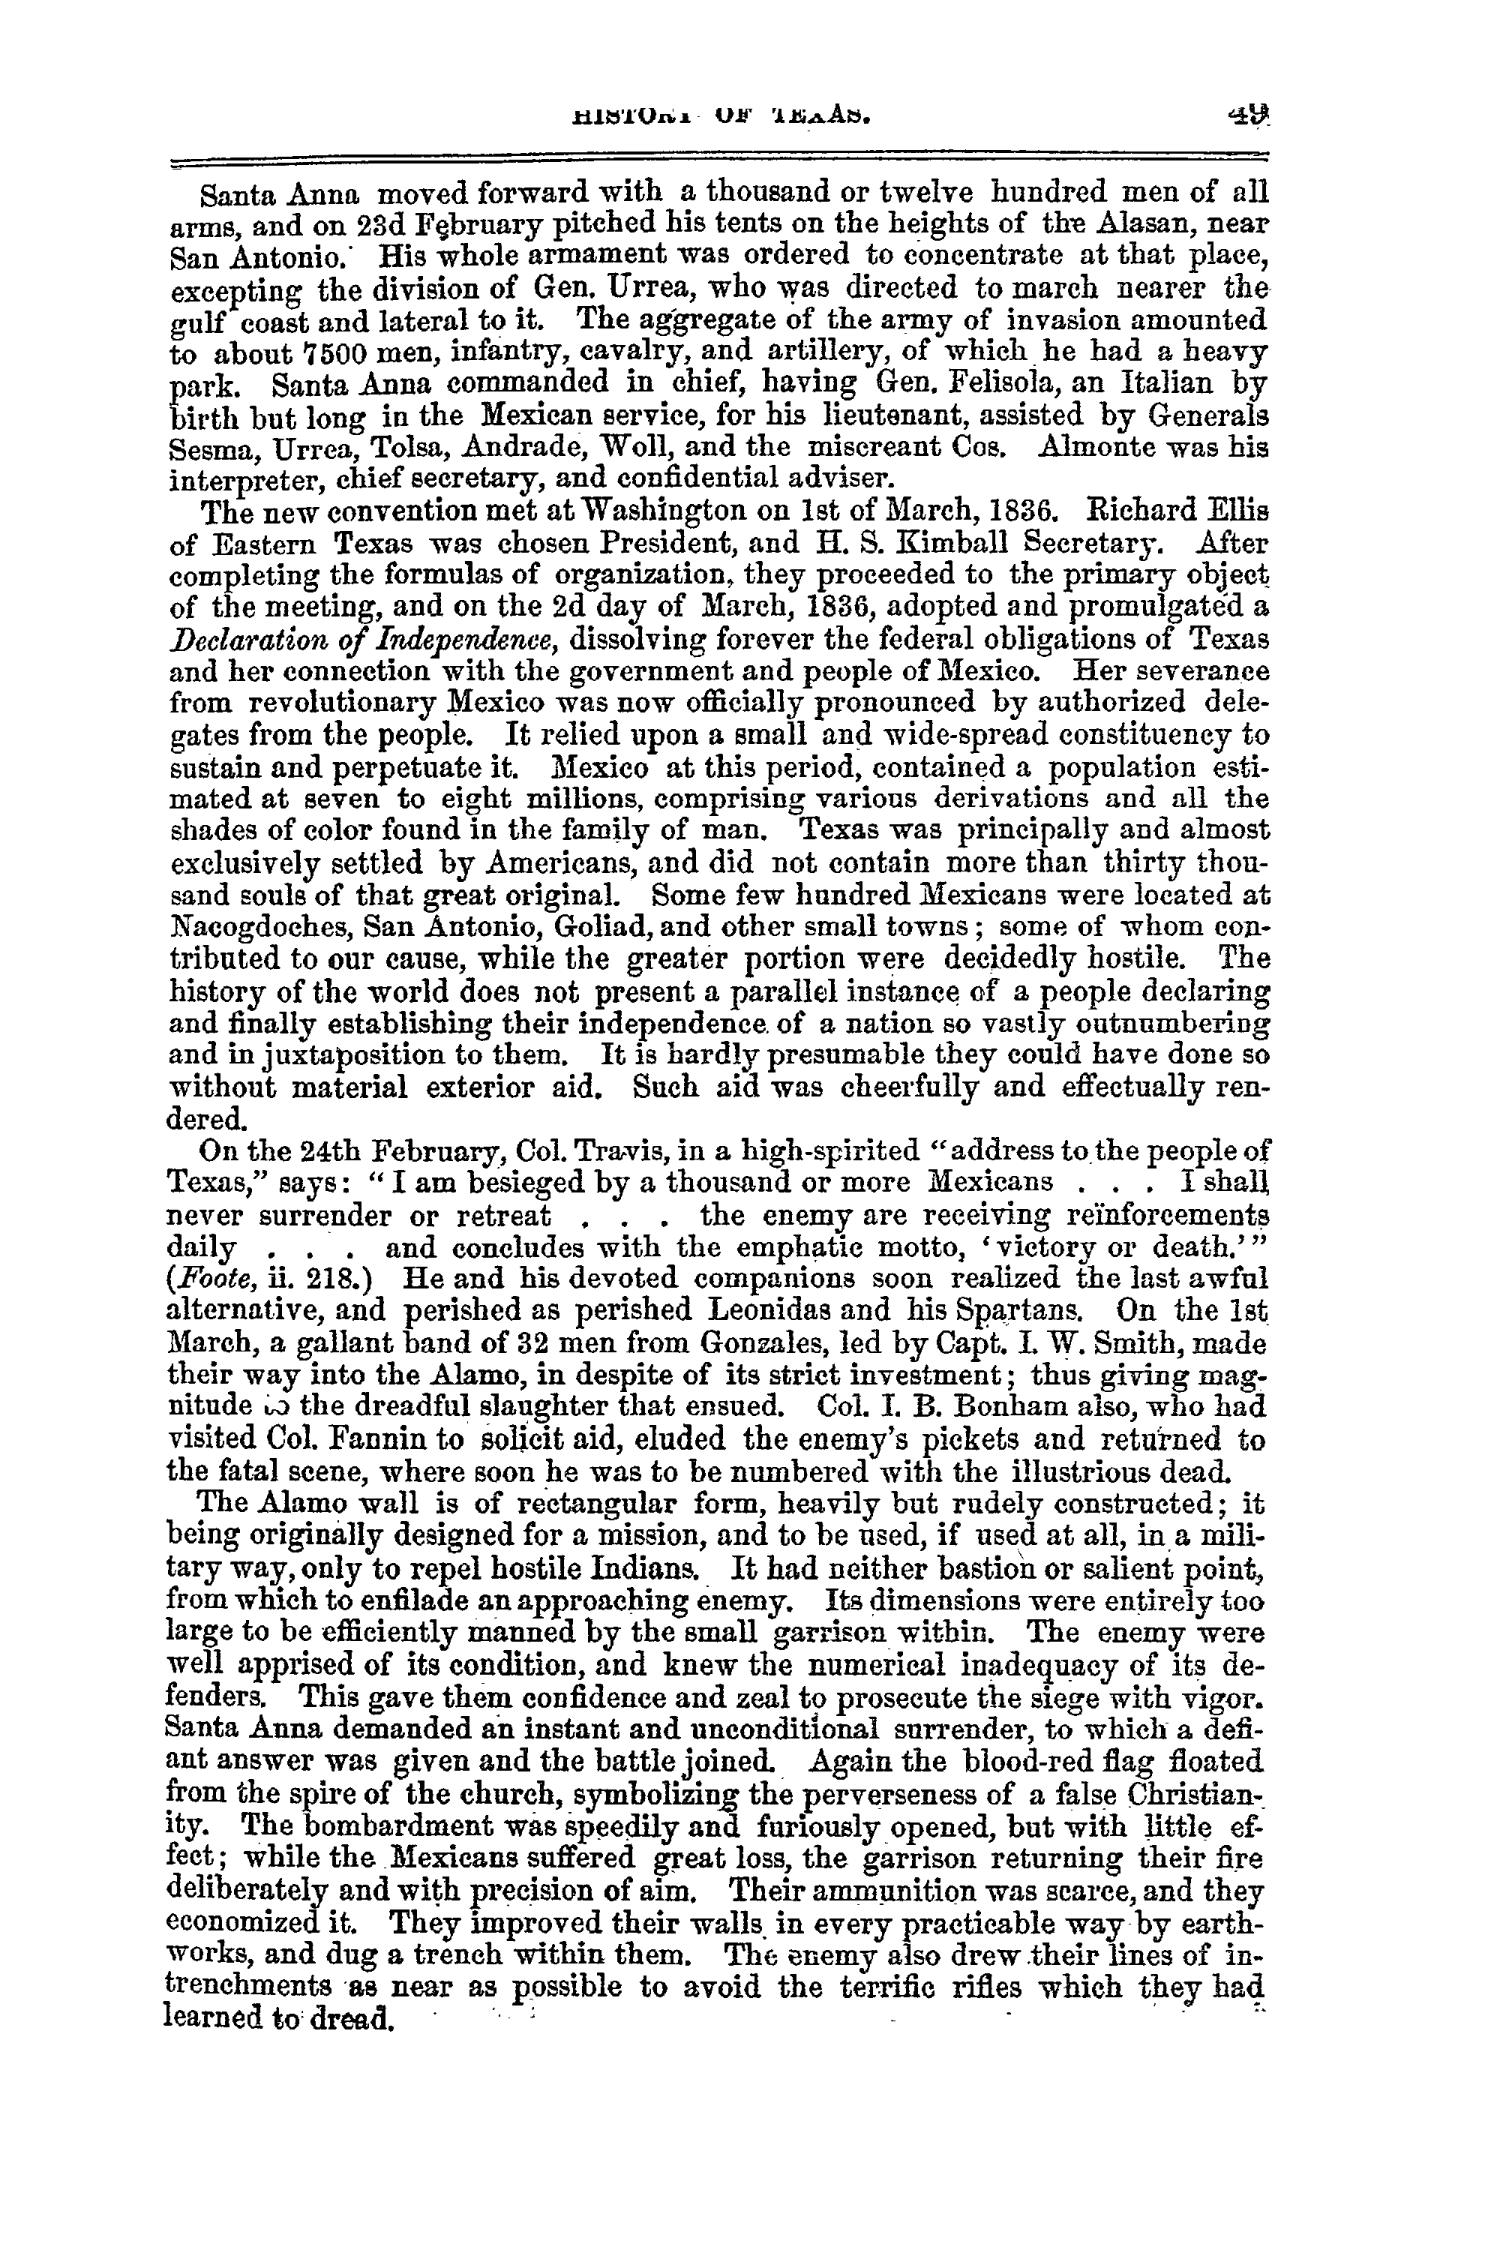 The Texas Almanac, for 1860, with Statistics, Historical and Biographical Sketches, &c., Relating to Texas.                                                                                                      49